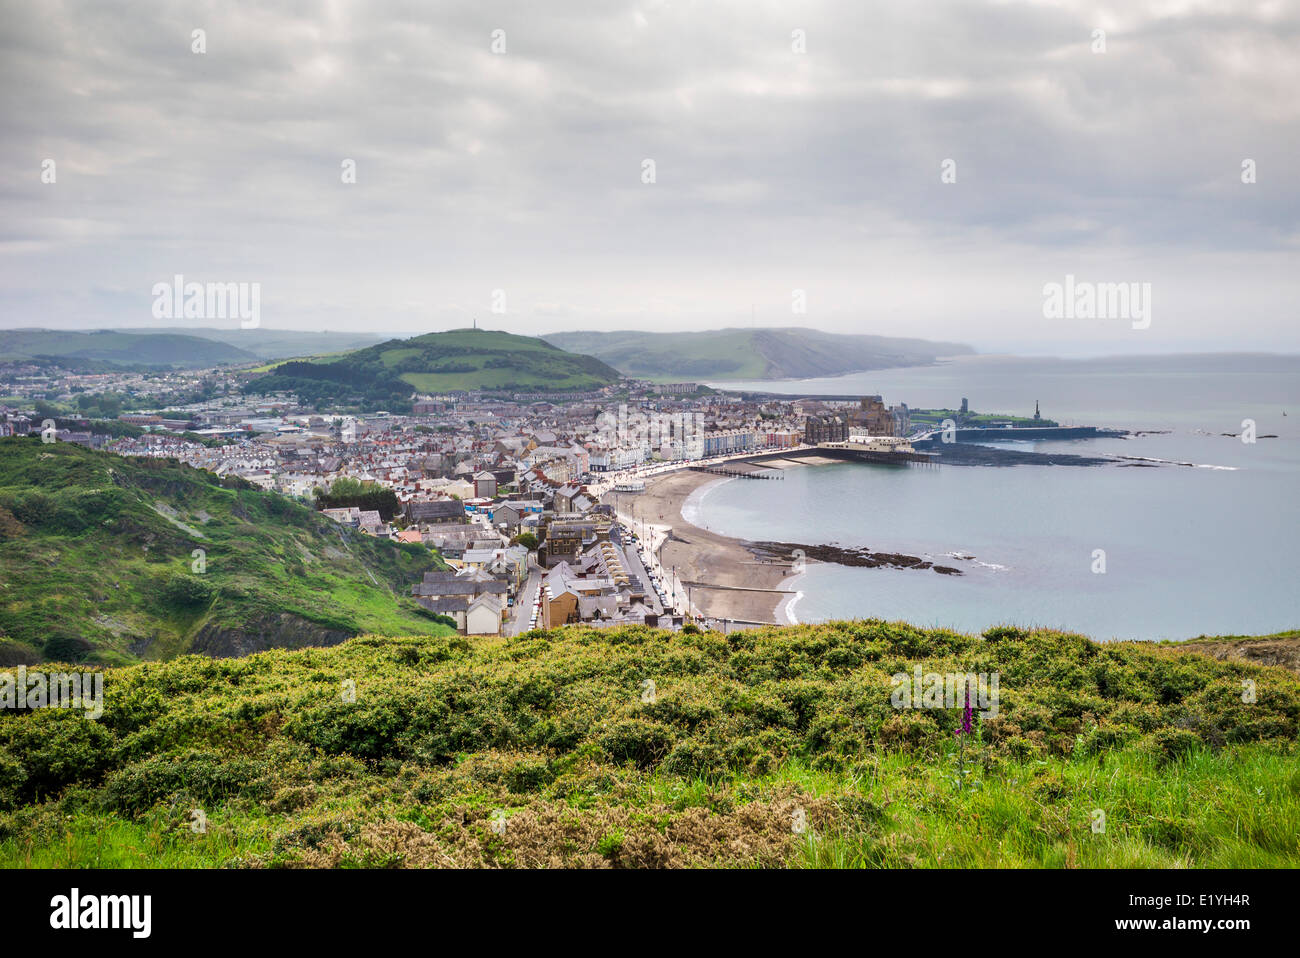 A view from the top of Constitution hill overlooking the coastal resort of Aberystwyth with sandy beach and Cardigan - Stock Image